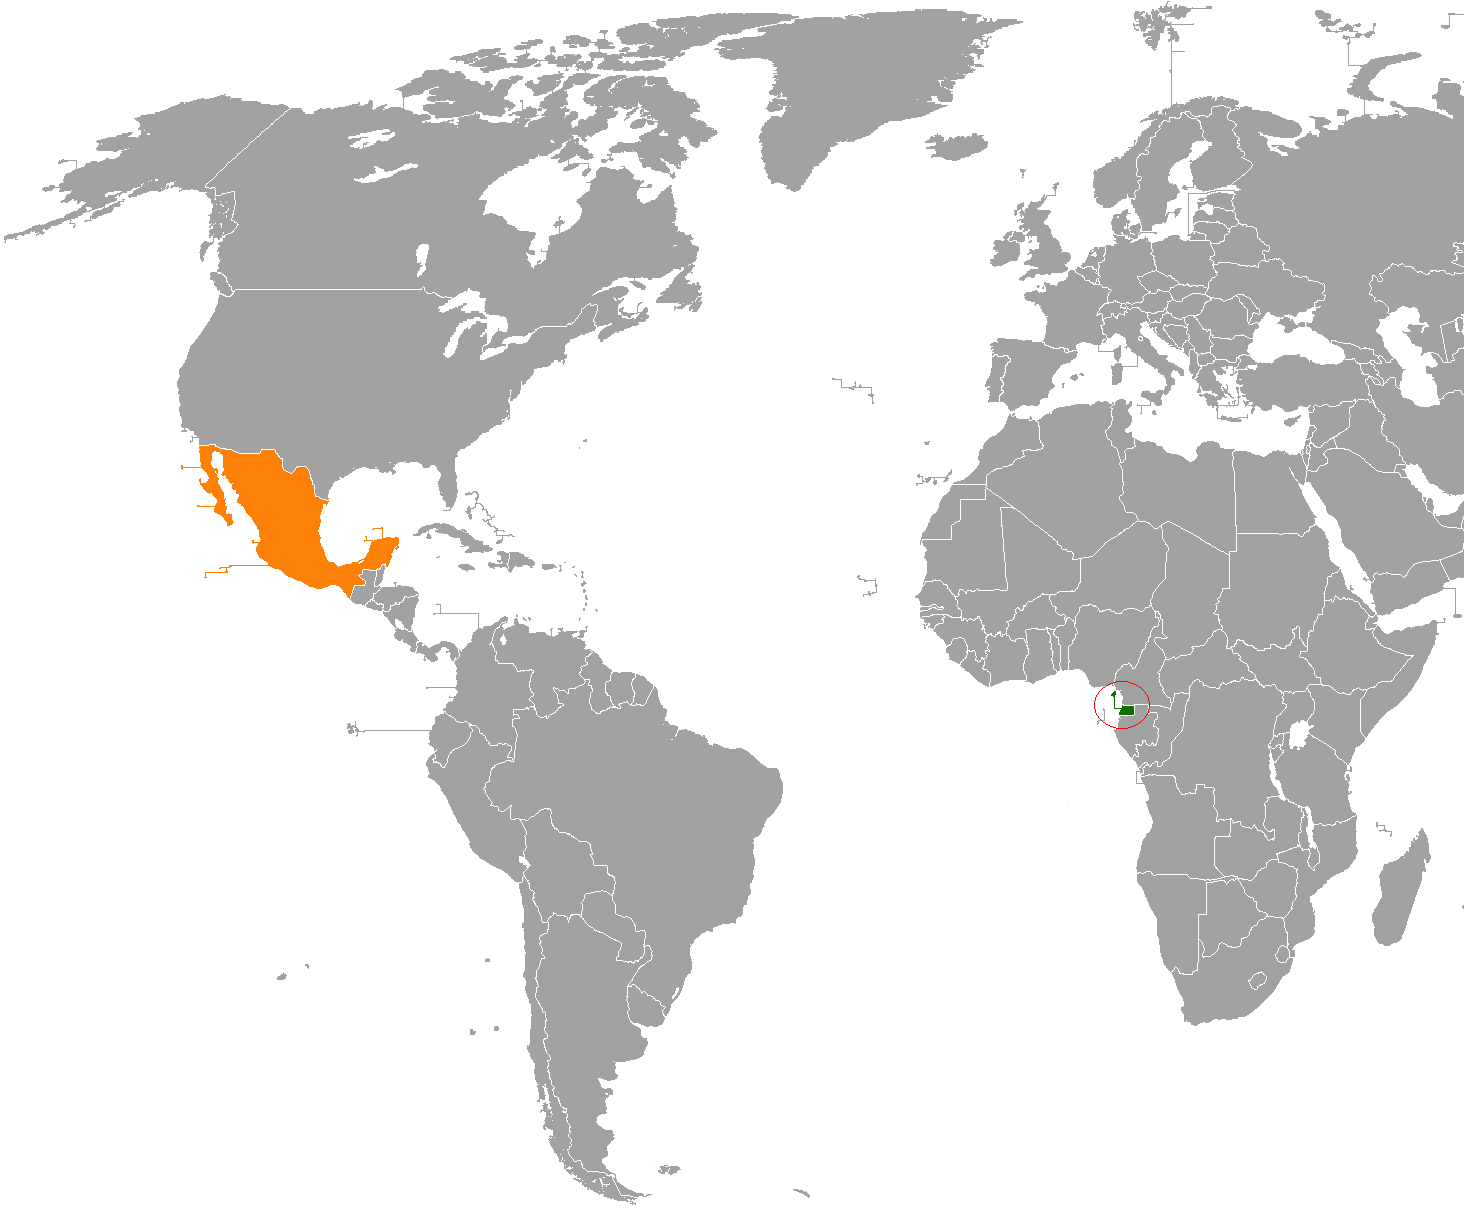 Equatorial Guinea–Mexico relations - Wikipedia on equatorial guinea africa, ghana world map, cape verde world map, equatorial guinea on map south america, malabo map, equator location on map, heremakono on the location of guinea africa map, tunisia world map,